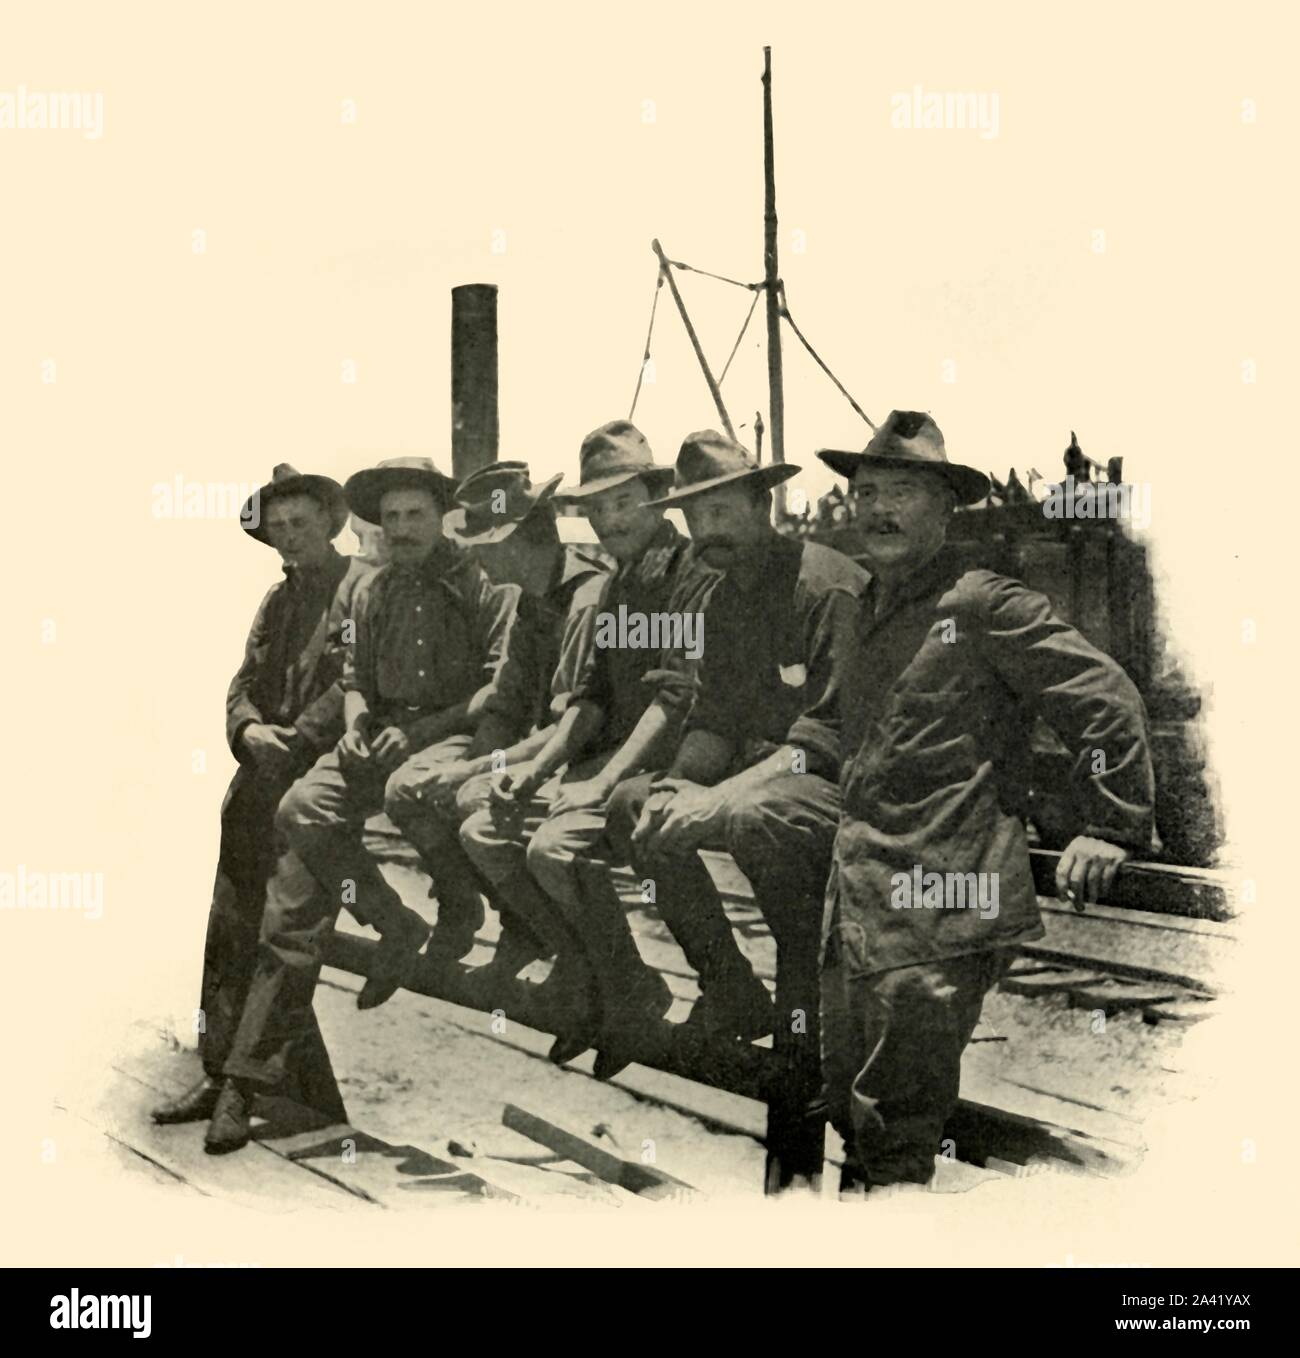 """'Rough Riders', Spanish-American War, 12 June 1898, (1899). Soldiers of the 1st United States Volunteer Cavalry, known as the Rough Riders, preparing to leave for Cuba from Port Tampa, Florida, USA. From """"The Little I saw of Cuba"""" by Burr McIntosh, with photographs by the author. (In 1898, American actor and journalist William Burr McIntosh went to Cuba to cover the Spanish-American War for """"Leslie's Weekly"""" as a reporter and photographer). [F. Tennyson Neely, London & New York, 1899] Stock Photo"""